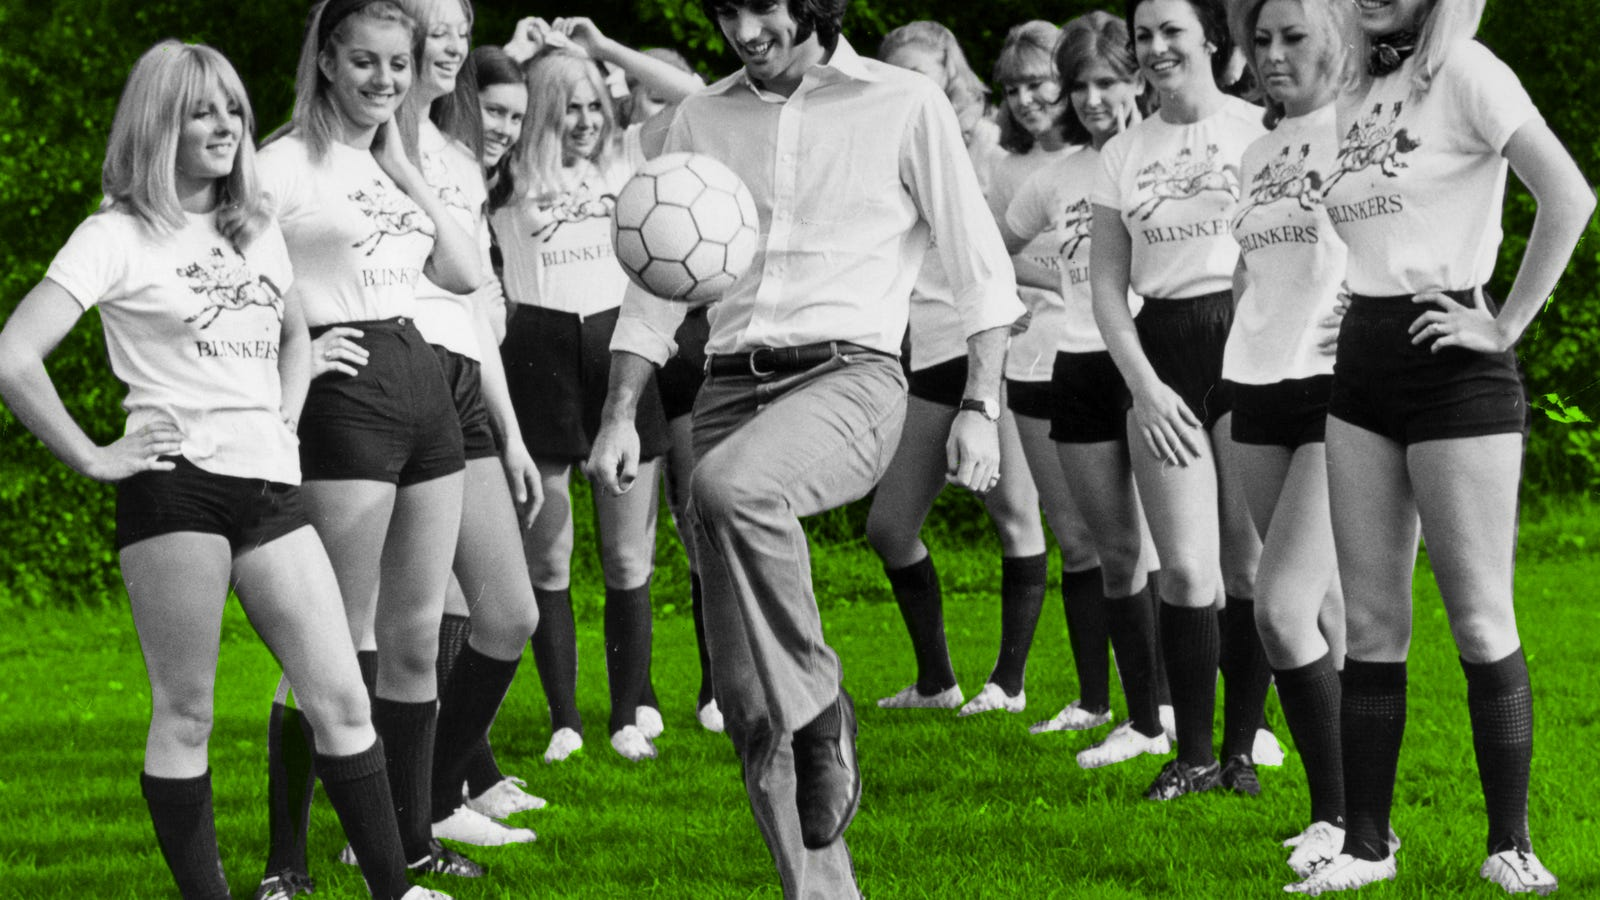 George Best And The Soccer Battle Of The Sexes That Changed... Well, Nothing